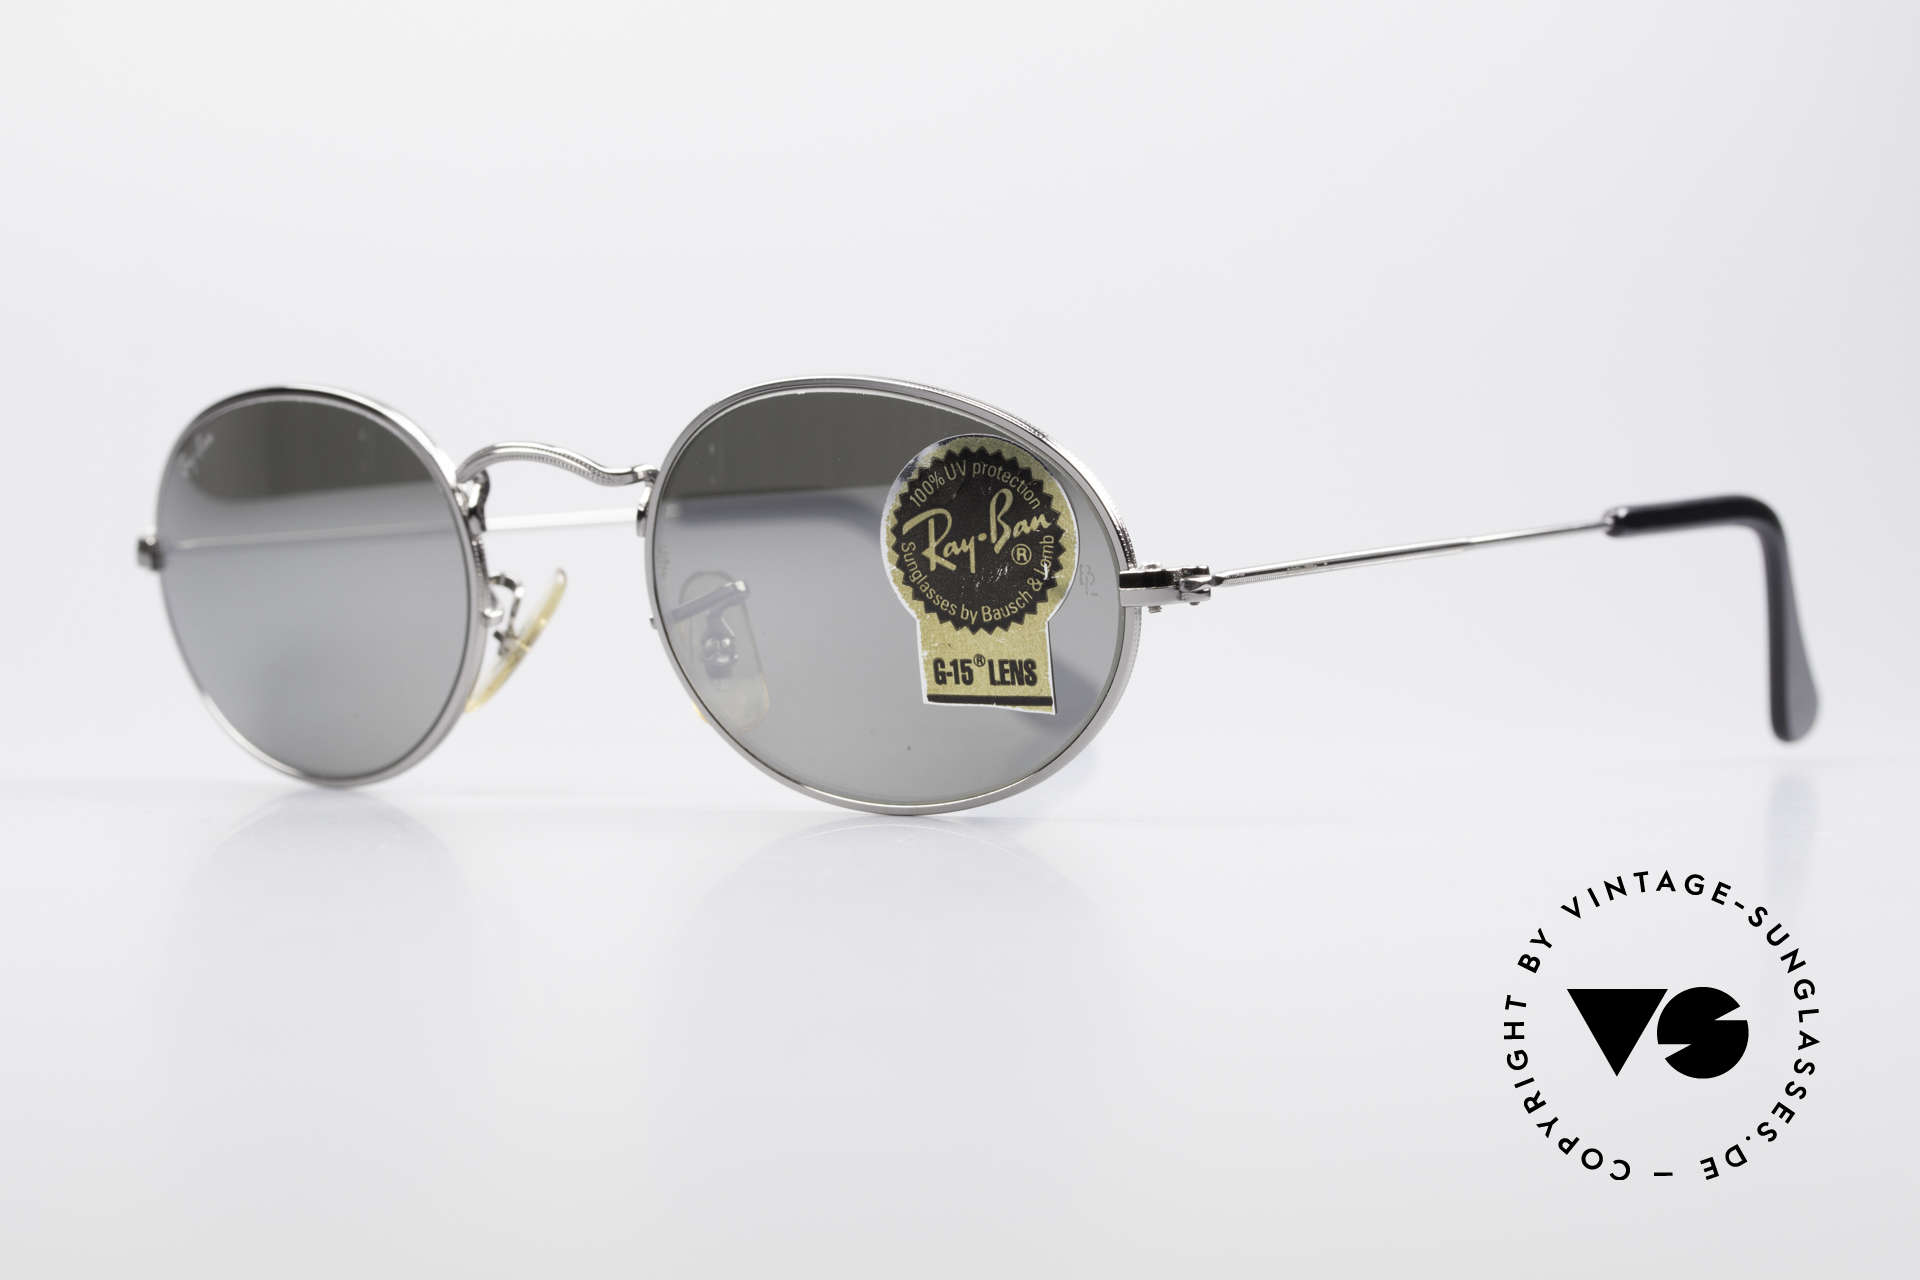 Ray Ban Classic Style I Mirrored B&L USA Sunglasses, best quality by Bausch&Lomb (B&L), 100% UV, Made for Men and Women